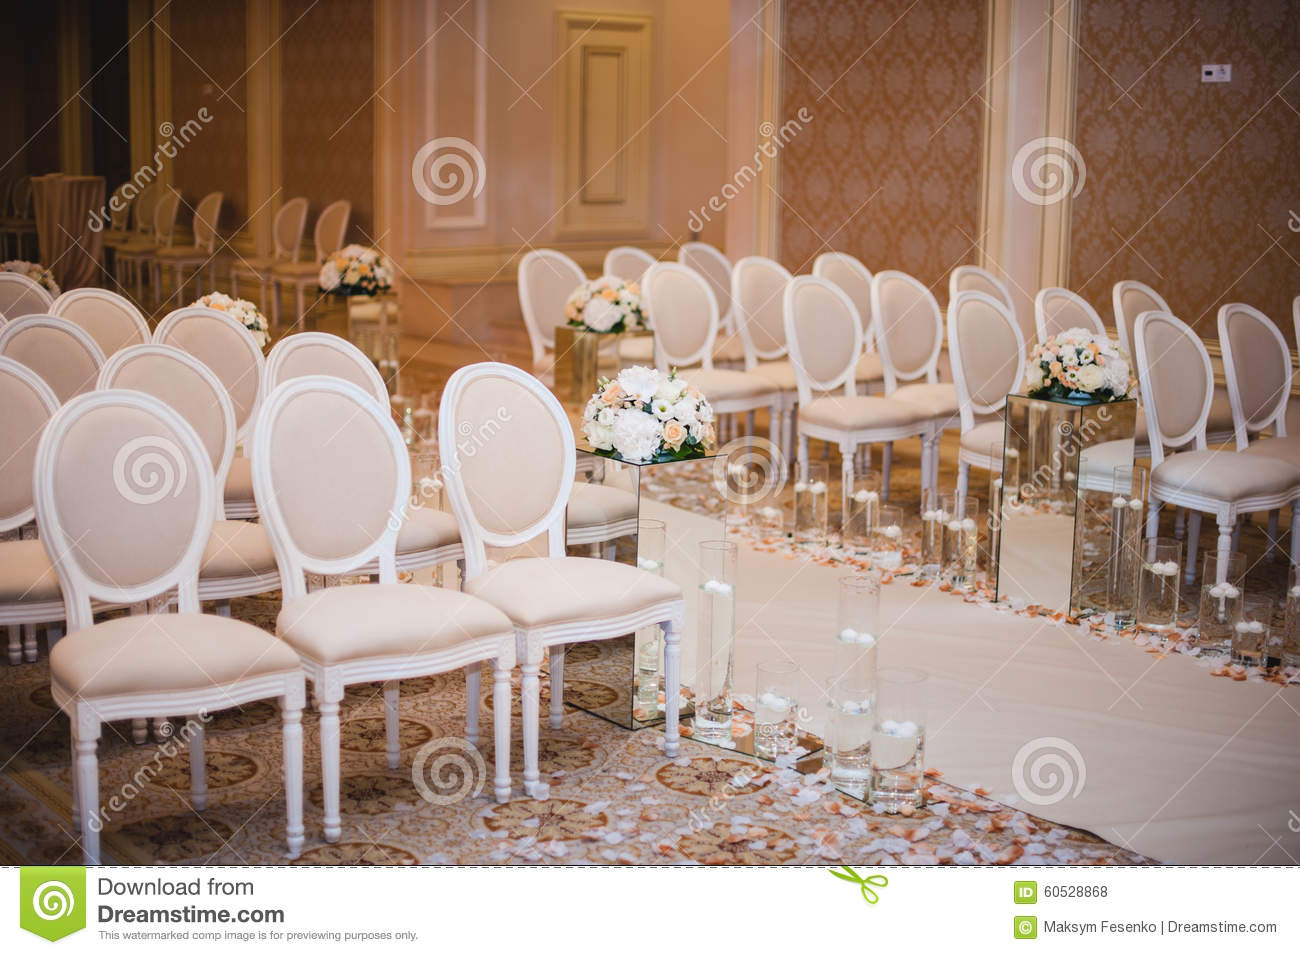 Wedding ceremony chair - Beautiful Wedding Ceremony Design Decoration Elements With Arch Floral Design Flowers Chairs